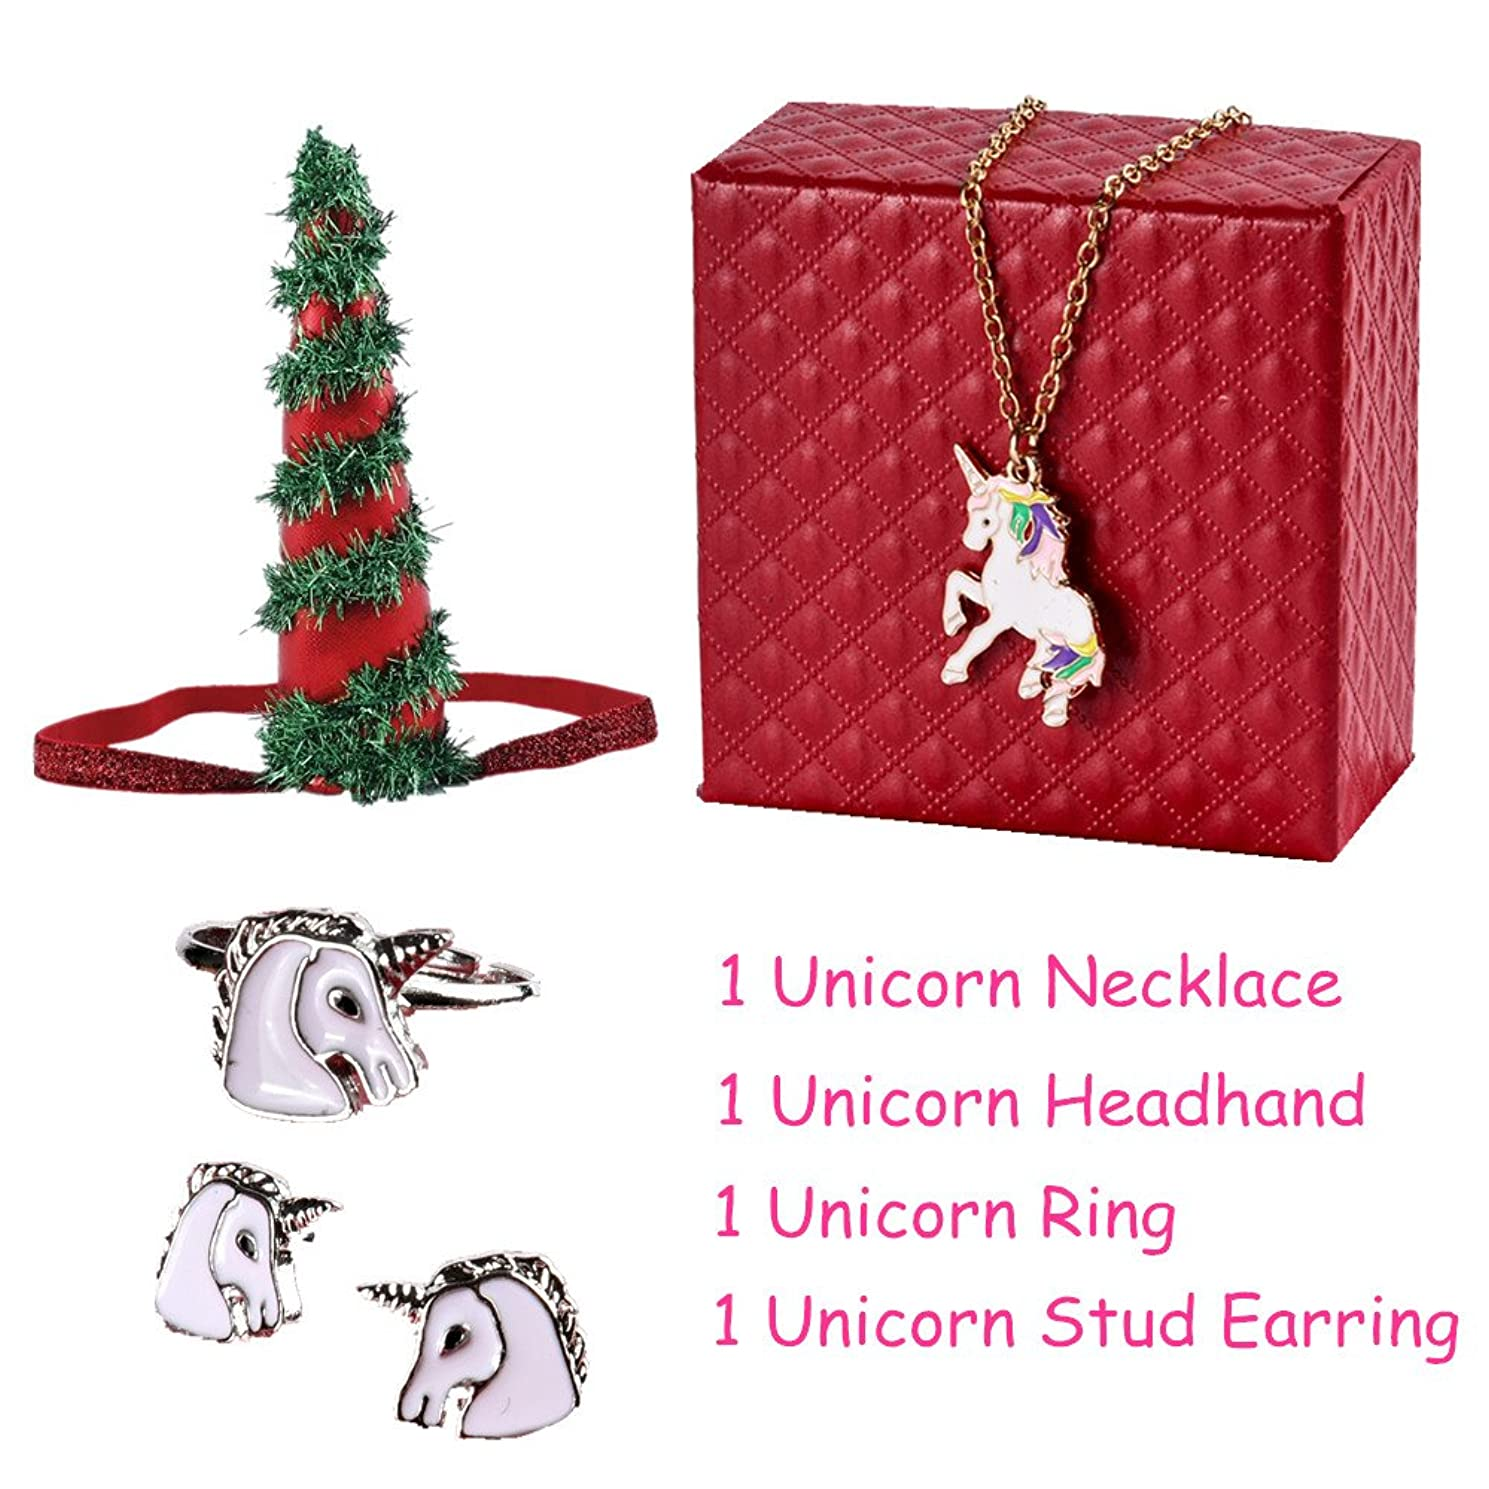 PinkSheep Unicorn Necklace Stud Earrings Ring Sets for Little Girls Women